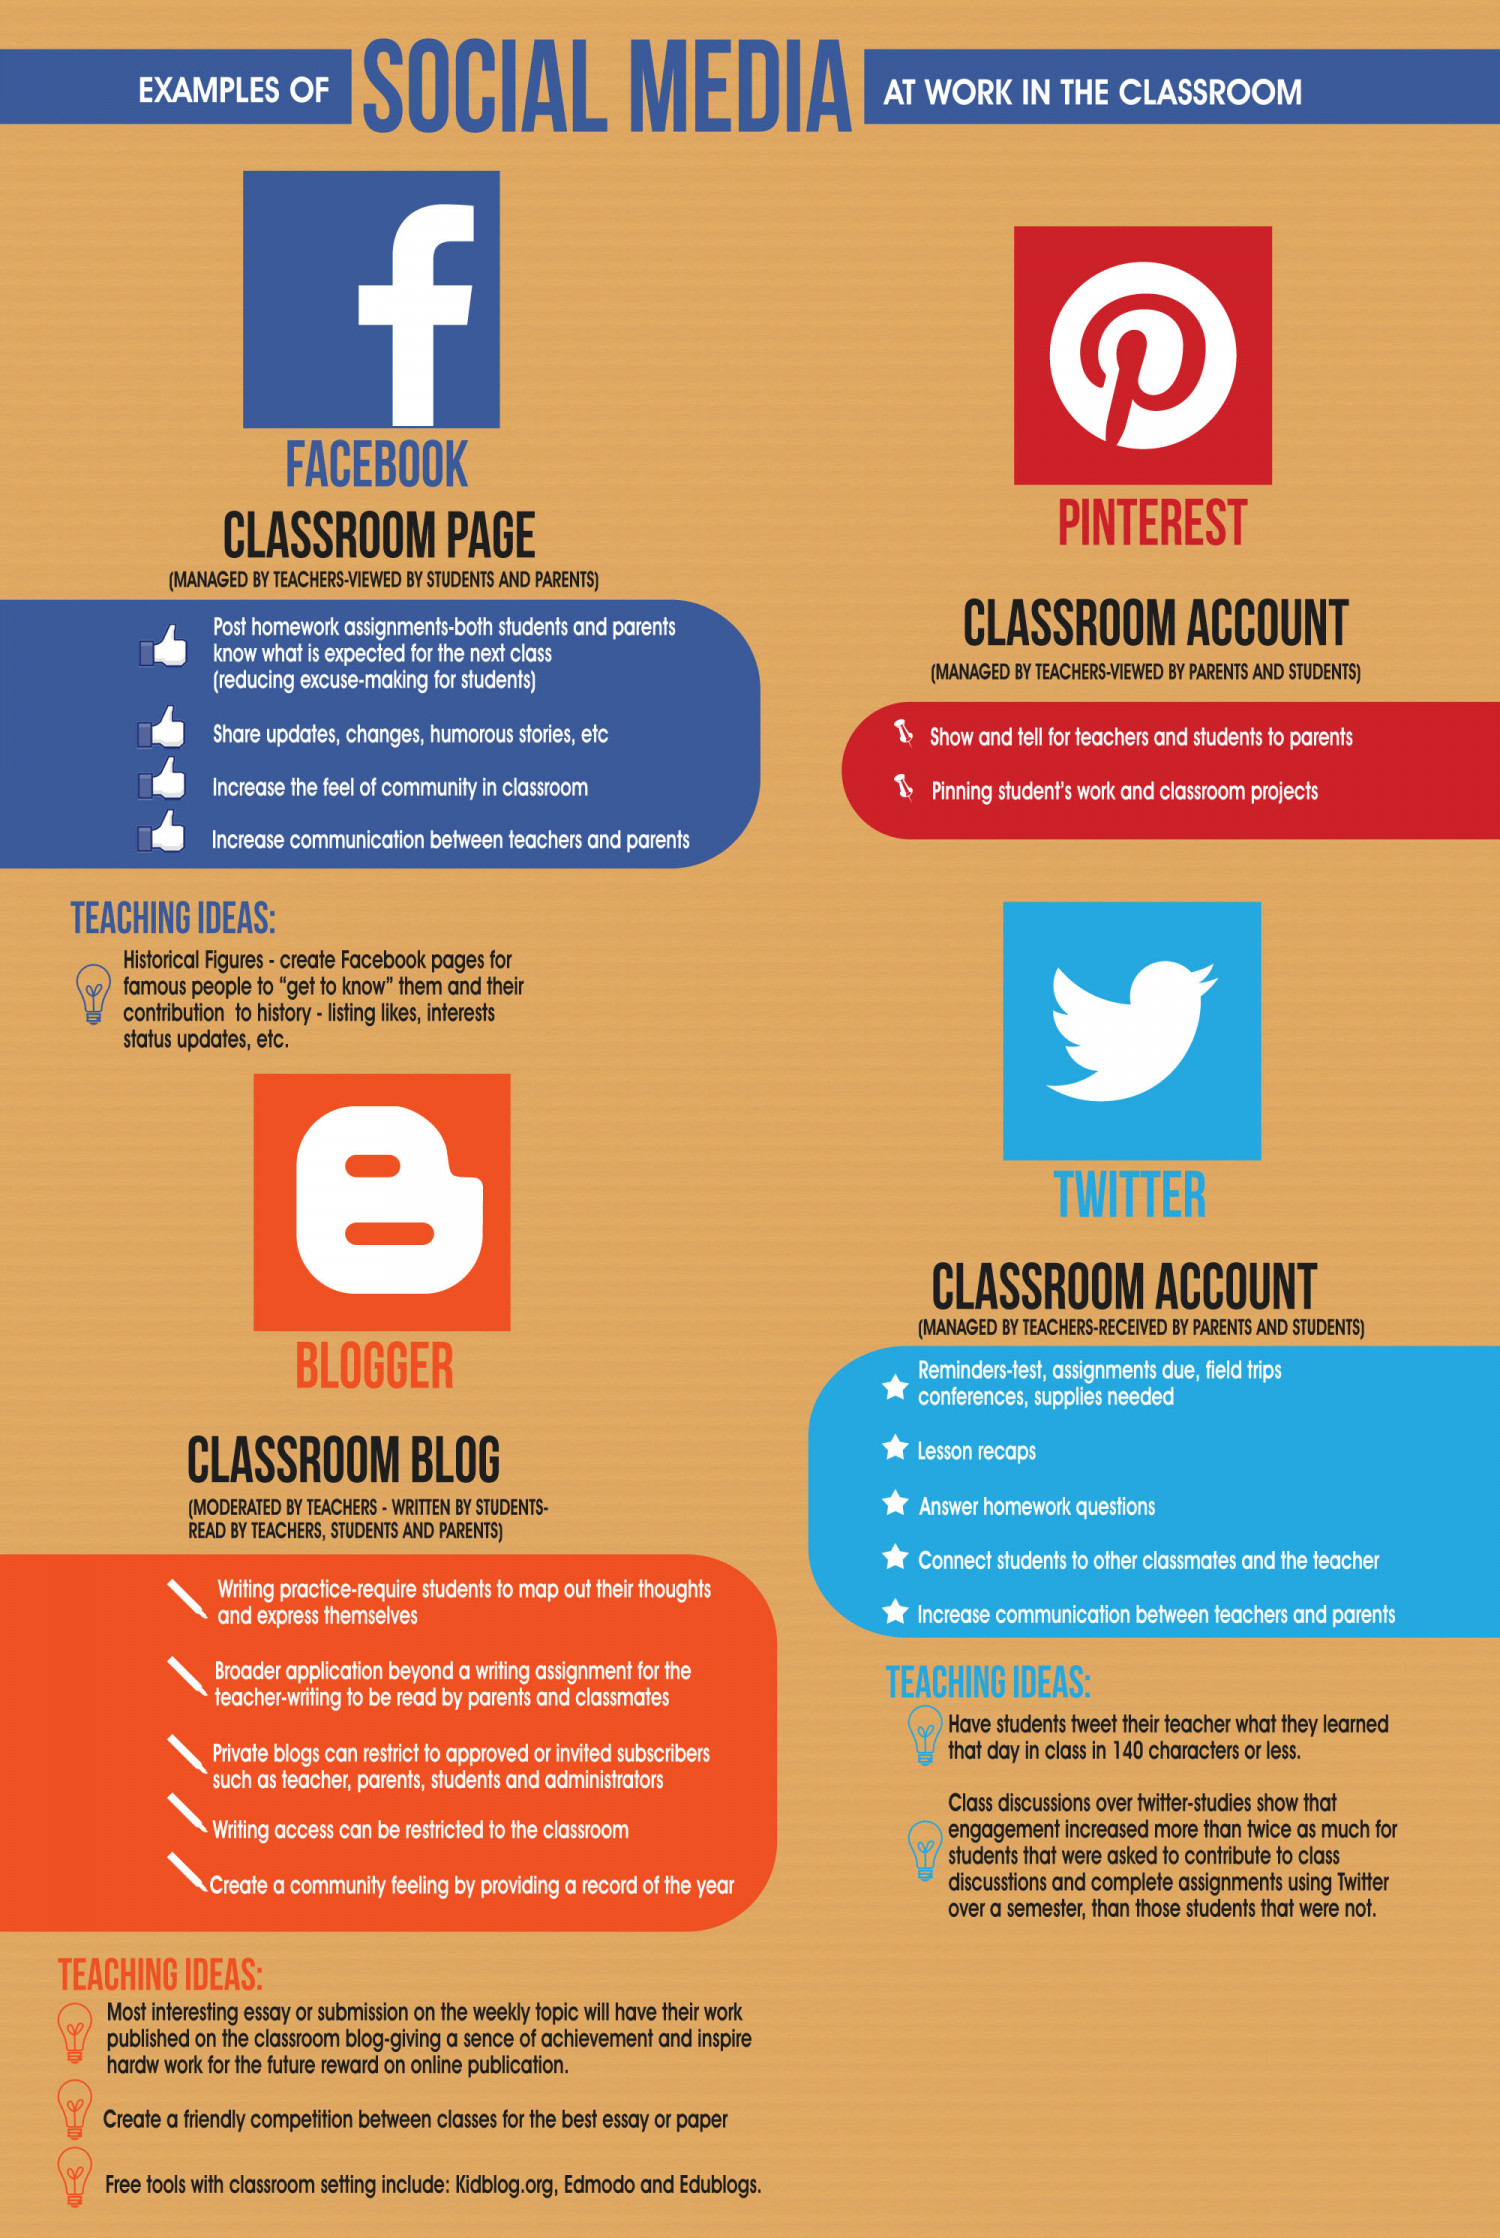 examples of social media in the classroom | visual.ly